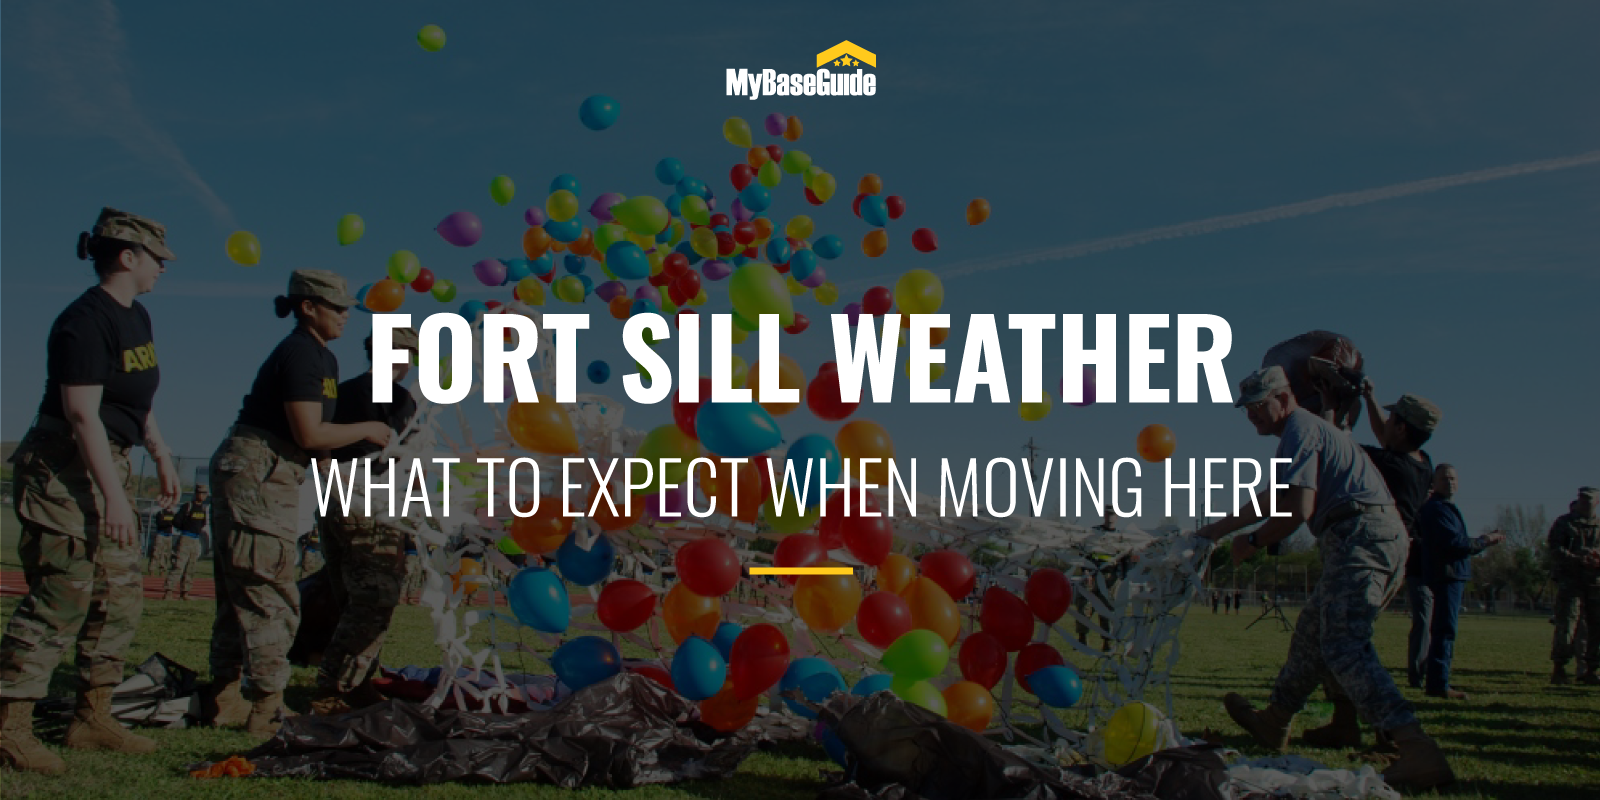 Fort Sill Weather: What To Expect When Moving Here